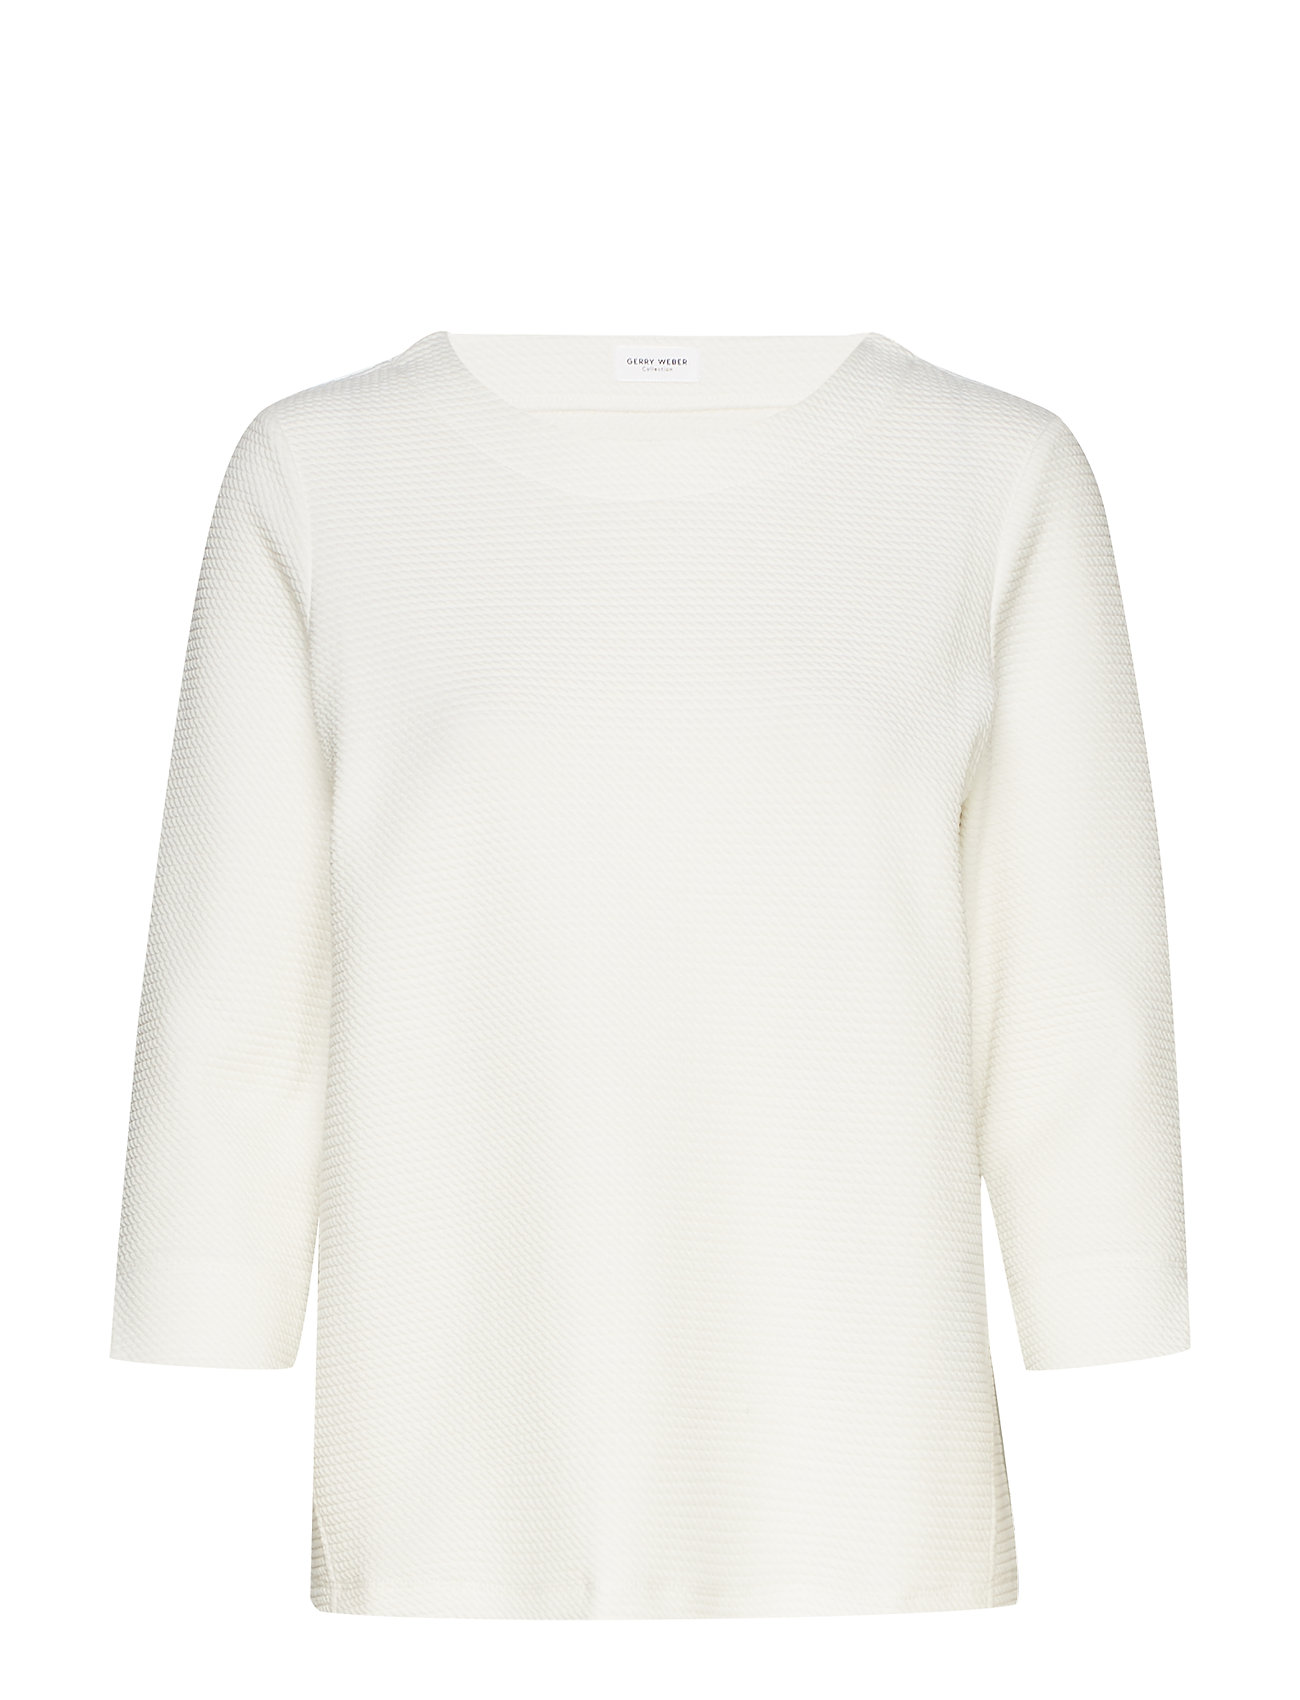 Gerry Weber SWEAT-SHIRT SHORT-SL - OFF-WHITE